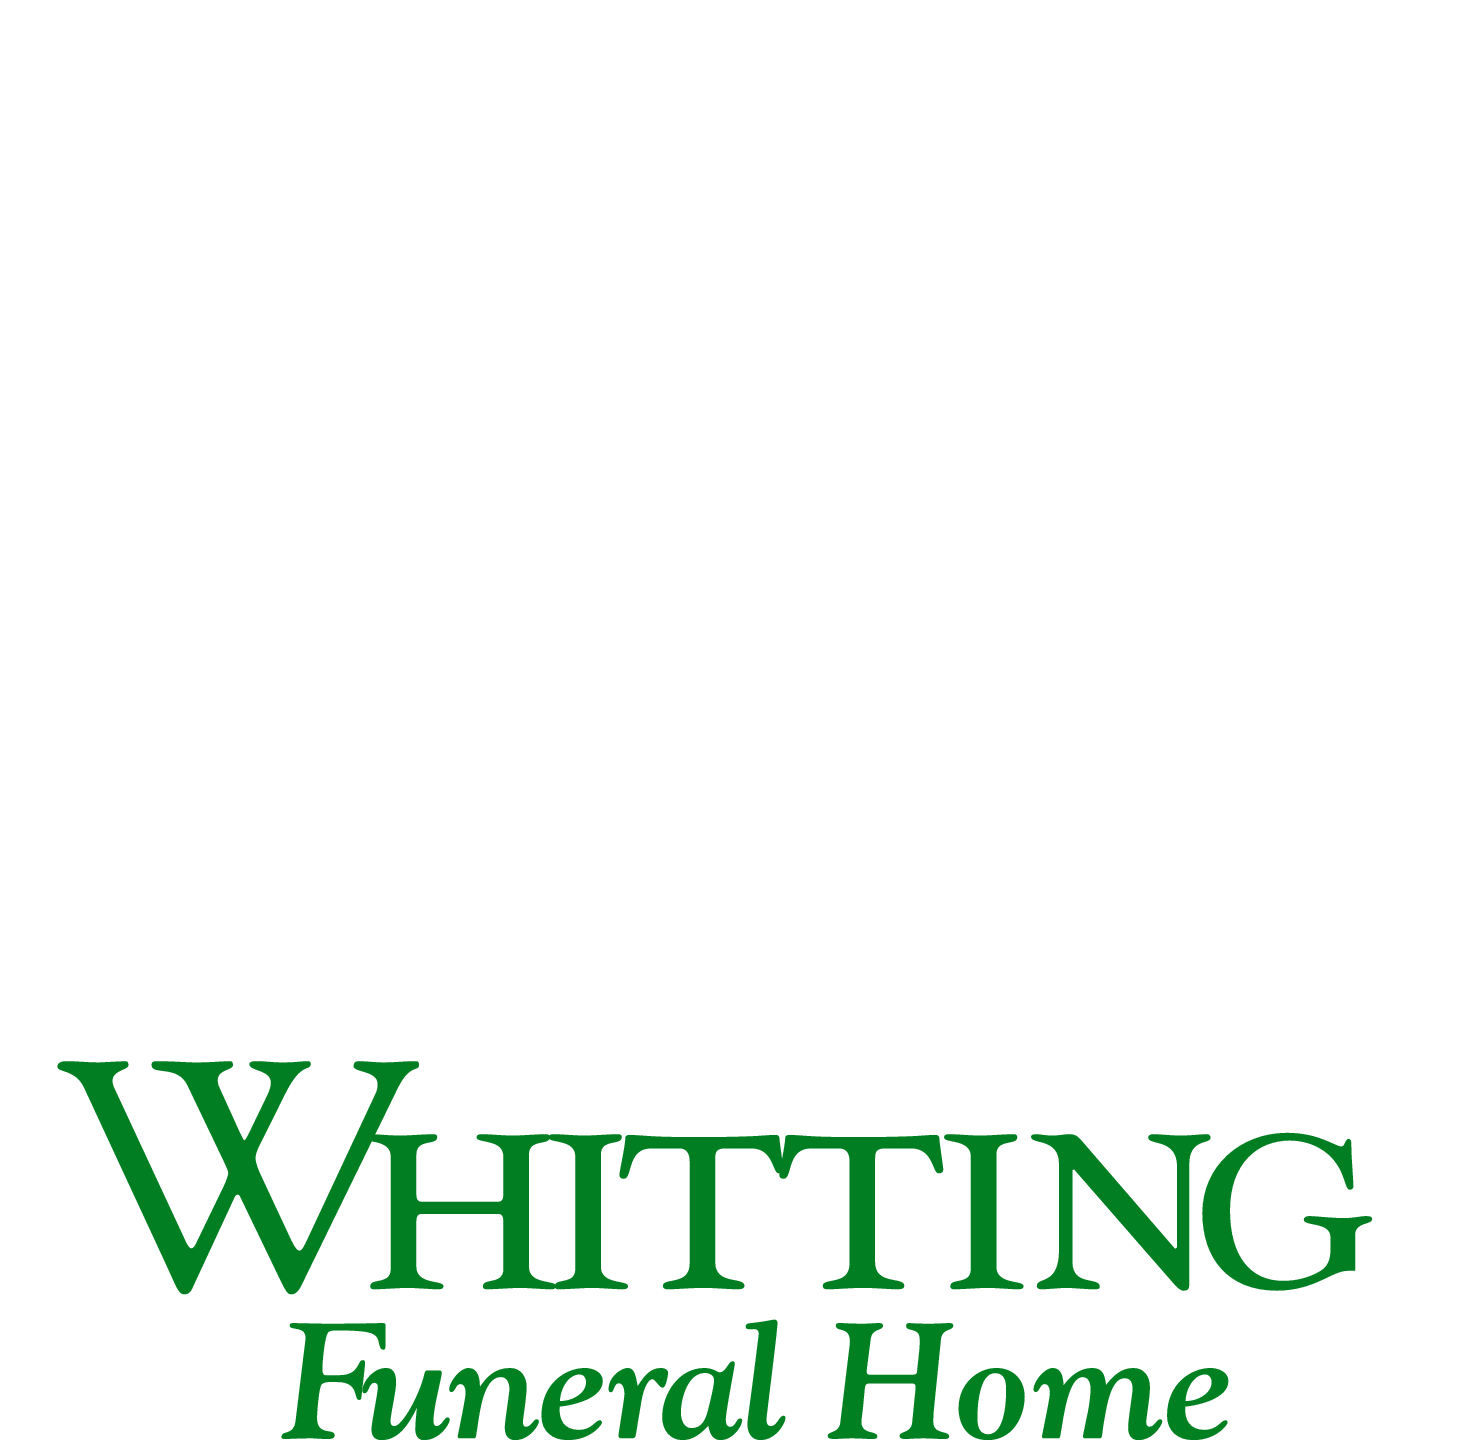 Whitting Funeral Home